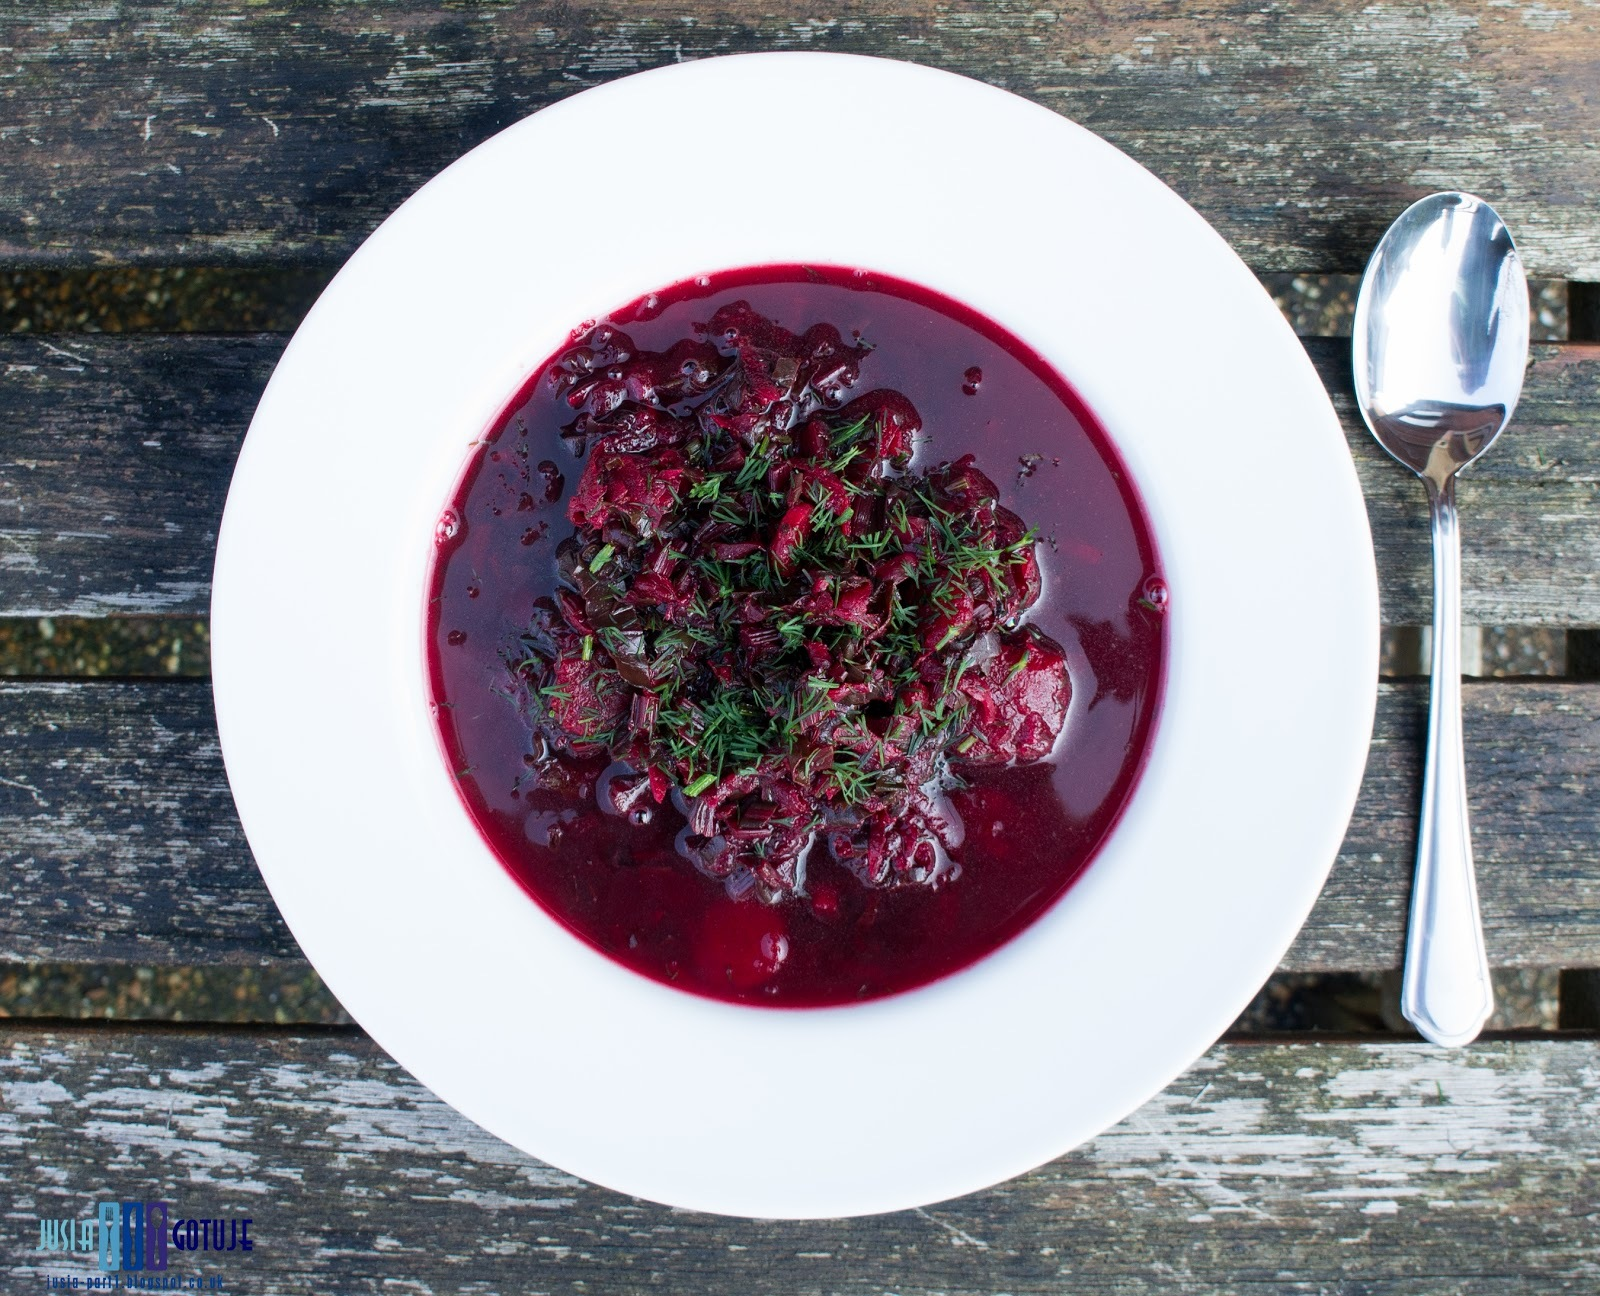 Botwinka z marchewką i ziemniakami. / Beetroot leaves soup with carrot and potatoes.